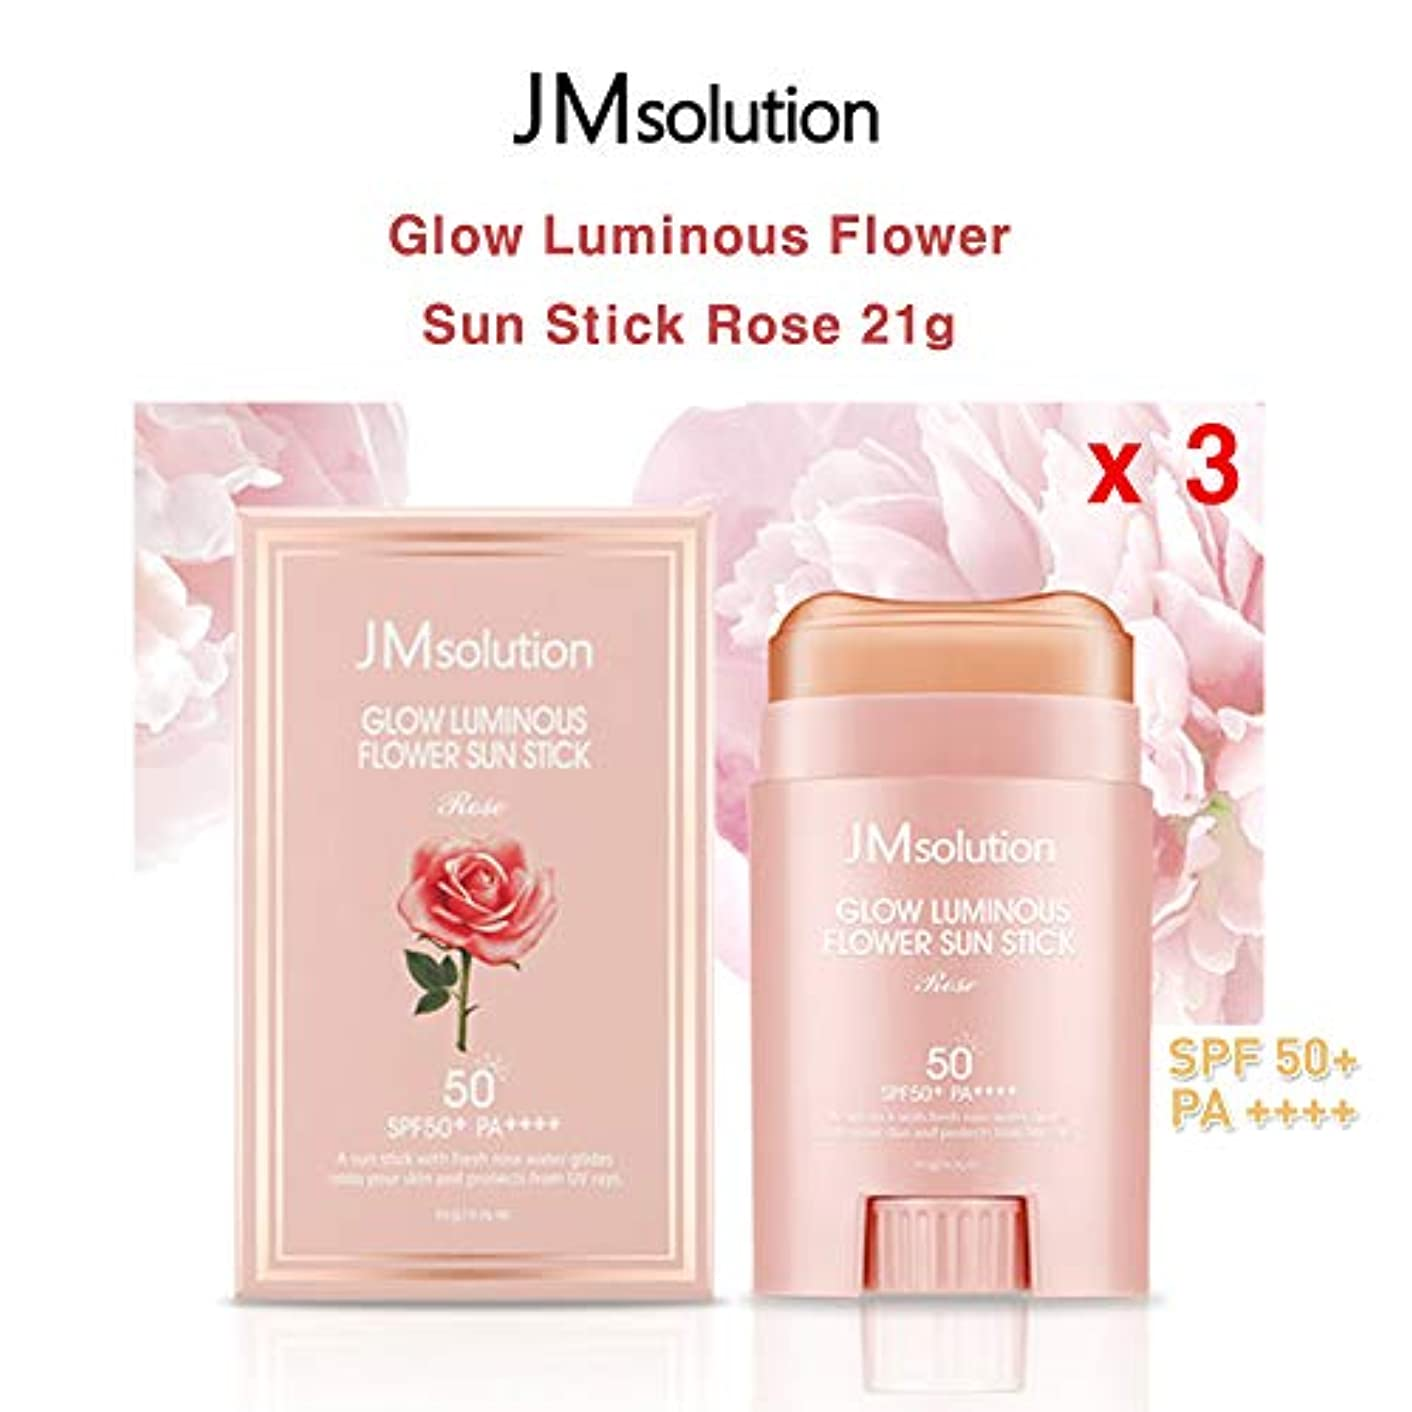 群集グリット外向きJM Solution ★1+1+1★ Glow Luminous Flower Sun Stick Rose 21g (spf50 PA) 光る輝く花Sun Stick Rose